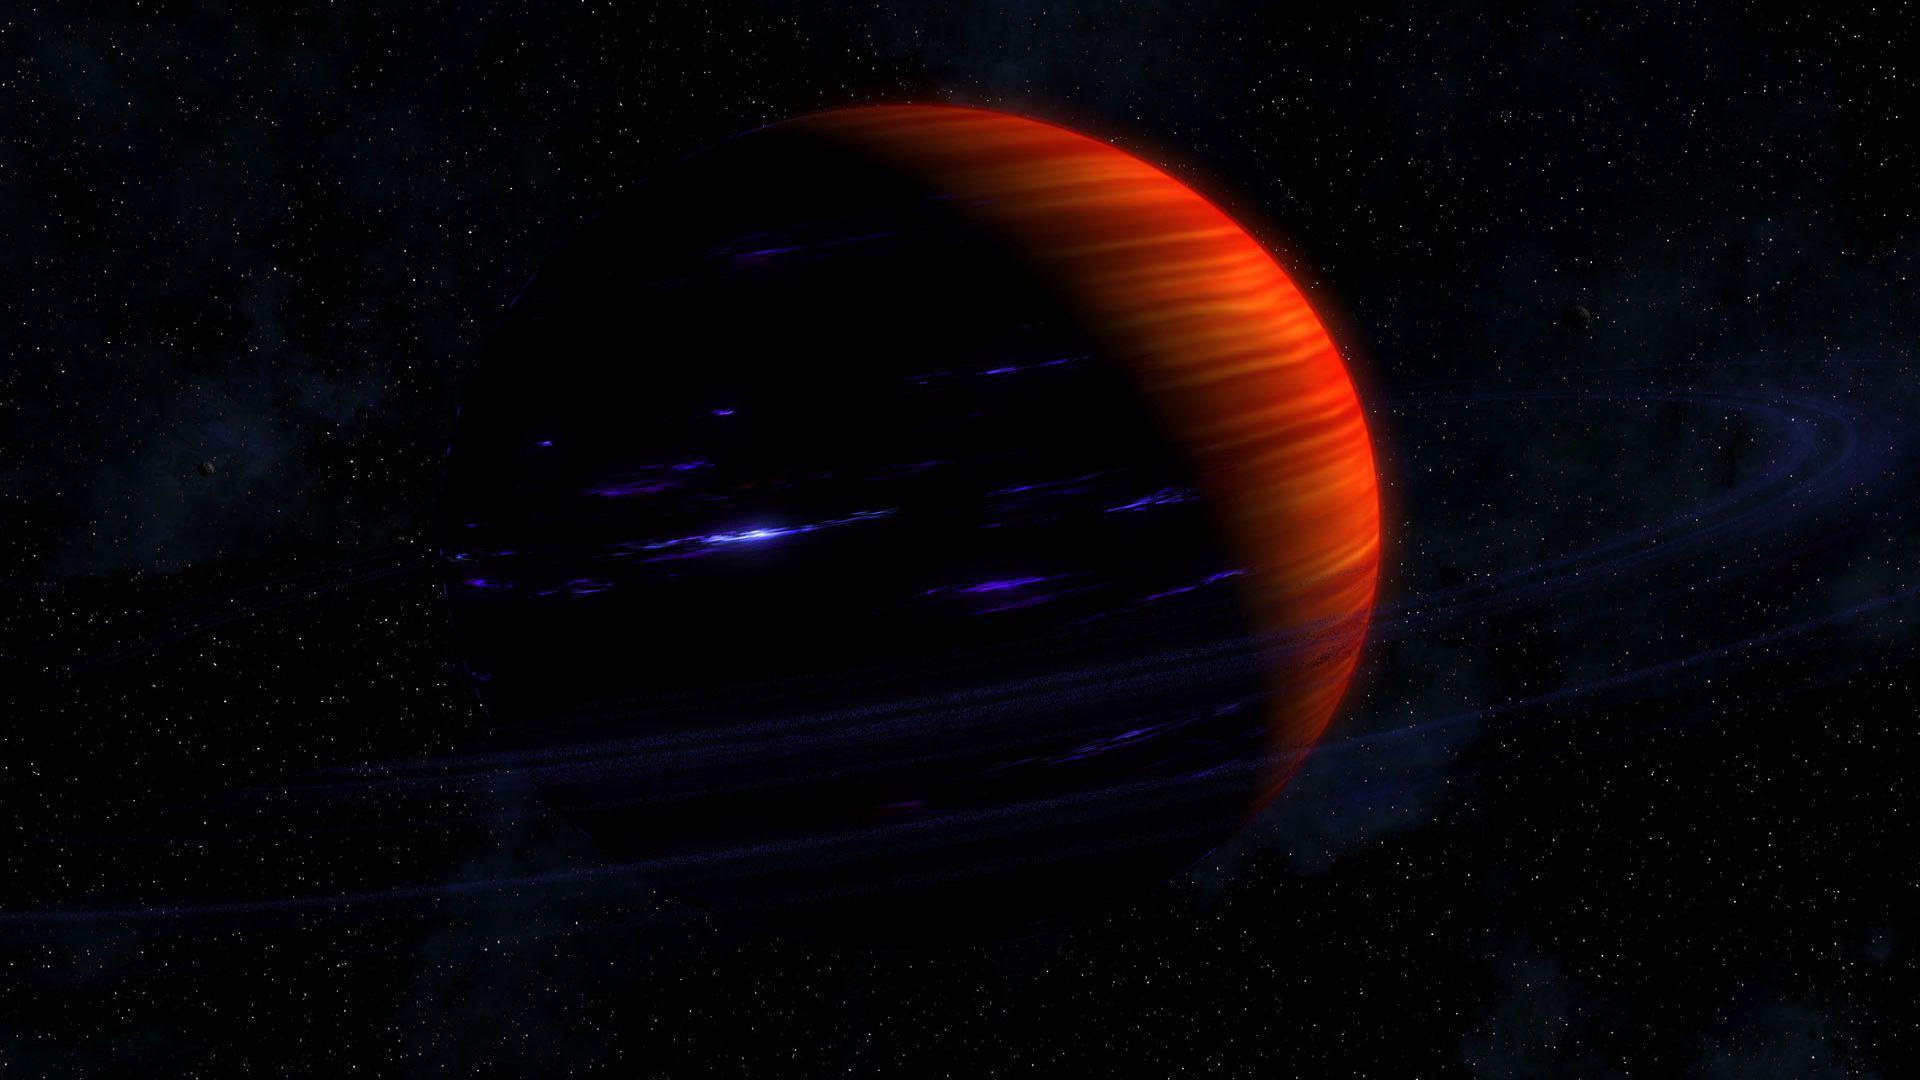 wallpaper.wiki-Planet-Orange-Space-1080p-Background-PIC-WPD008681